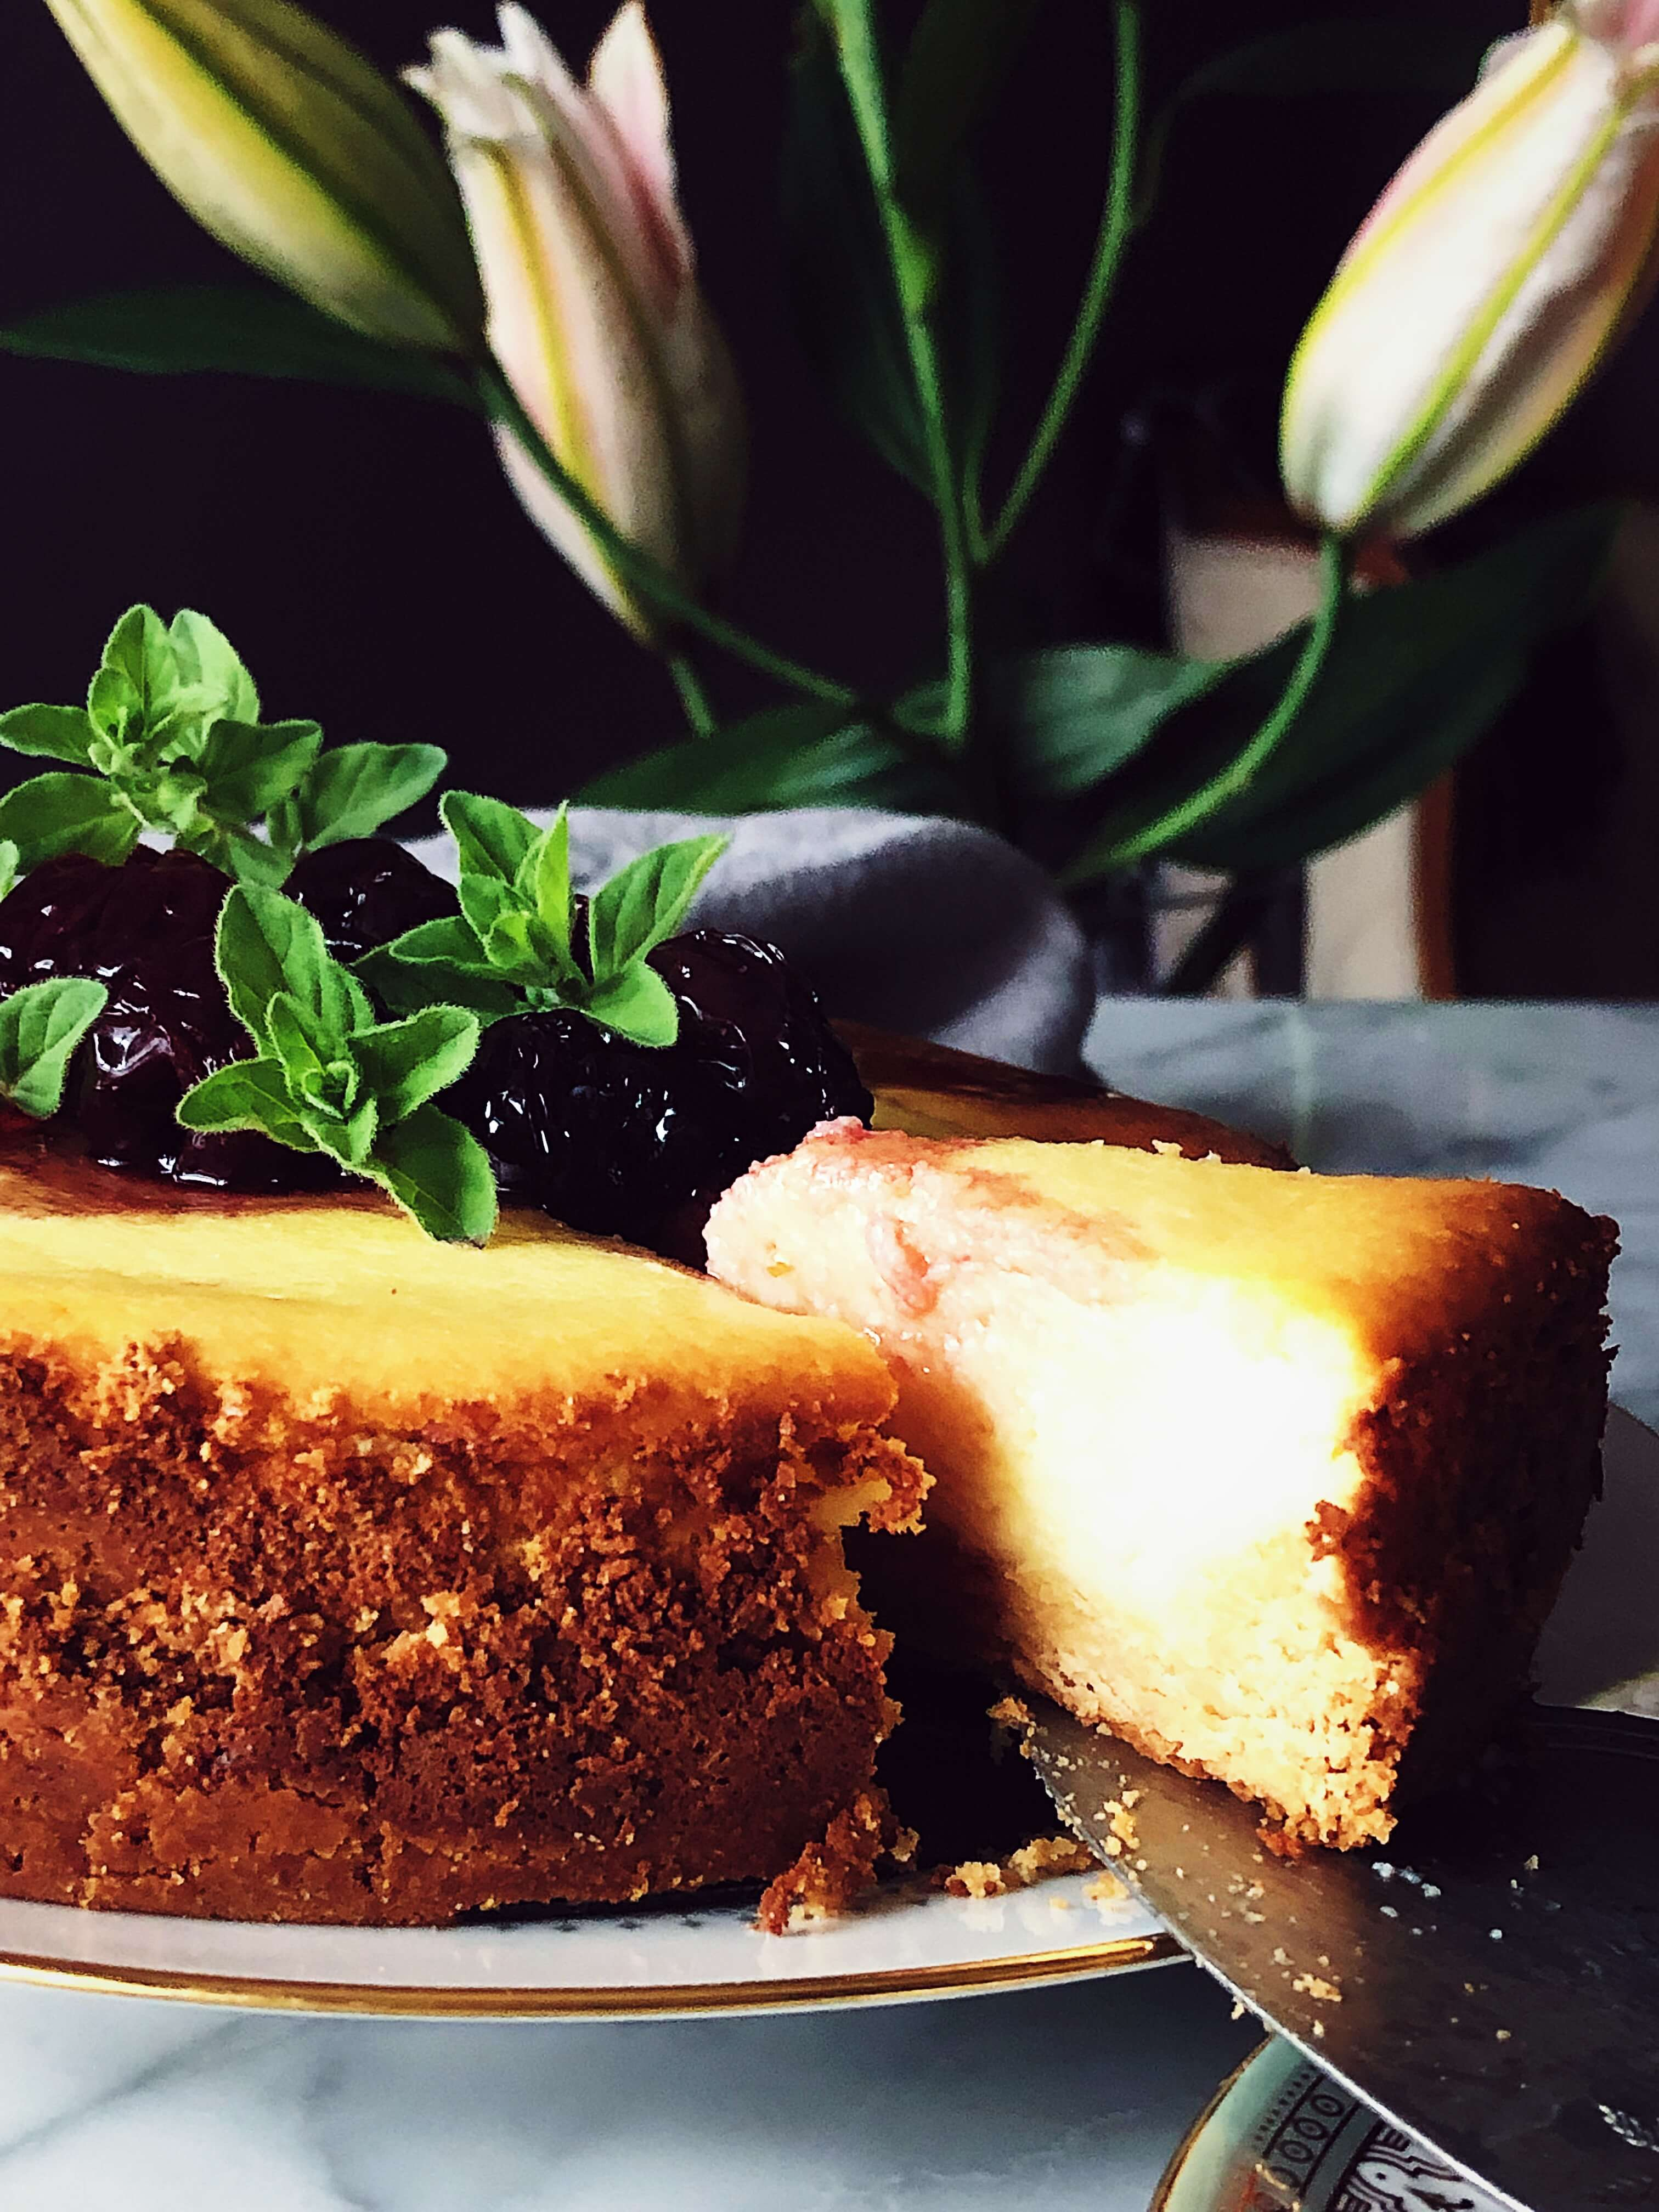 baked ricotta cheesecake without cream cheese #gourmetproject